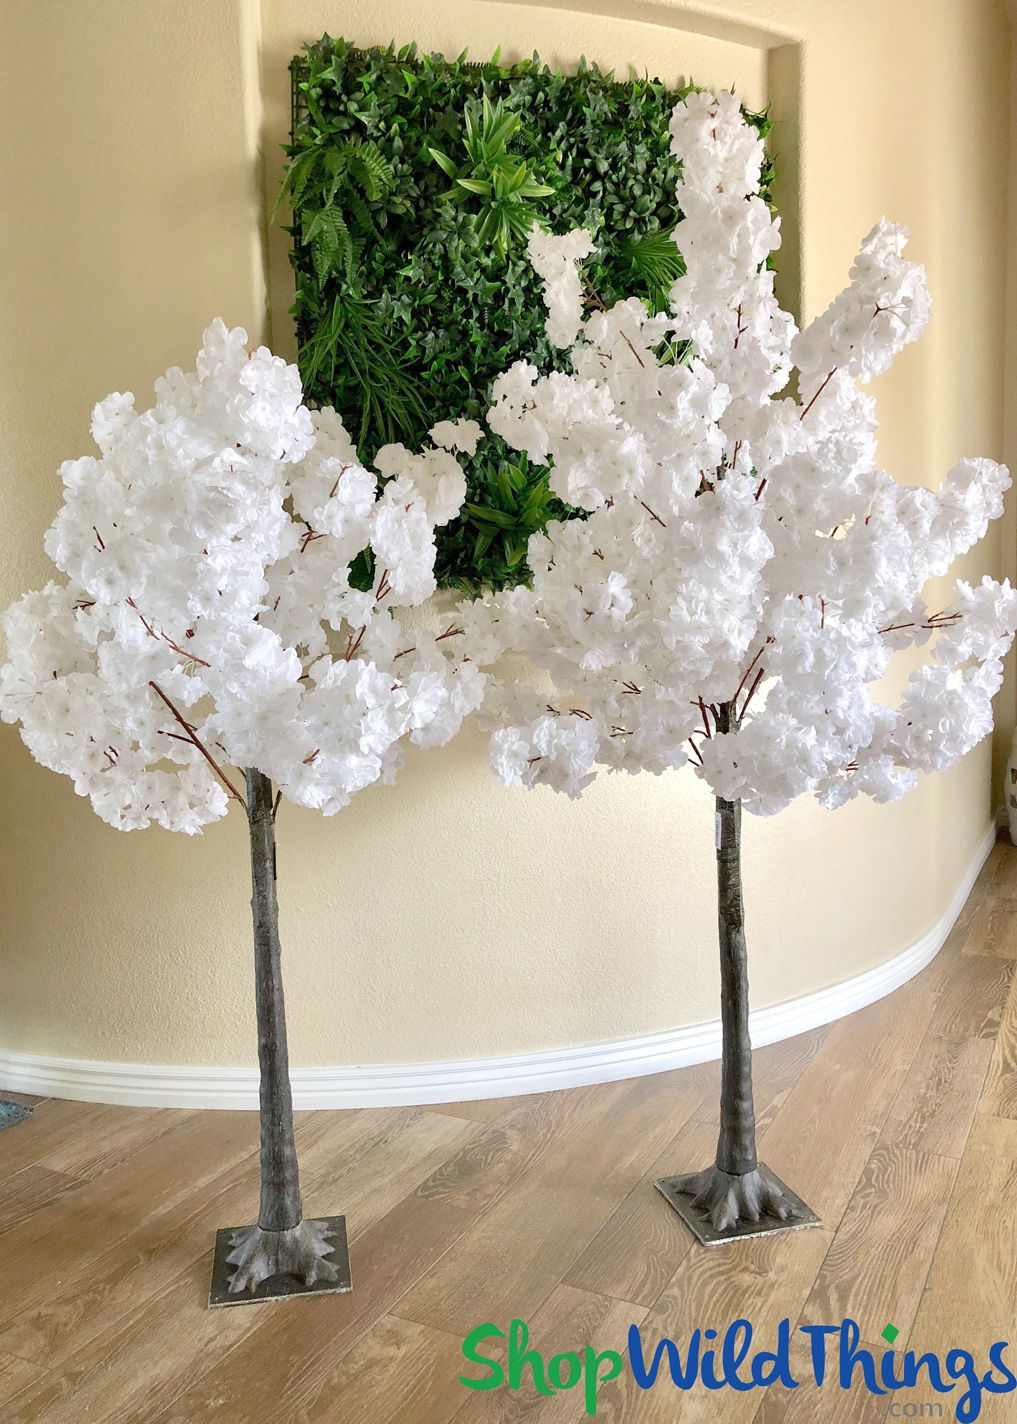 5 Pure White Flowering Cherry Blossom Tree Attached To Heavy Duty Acrylic Base Branches Ben Blossom Tree Wedding Tree Branch Wedding Tree Branch Wedding Arch